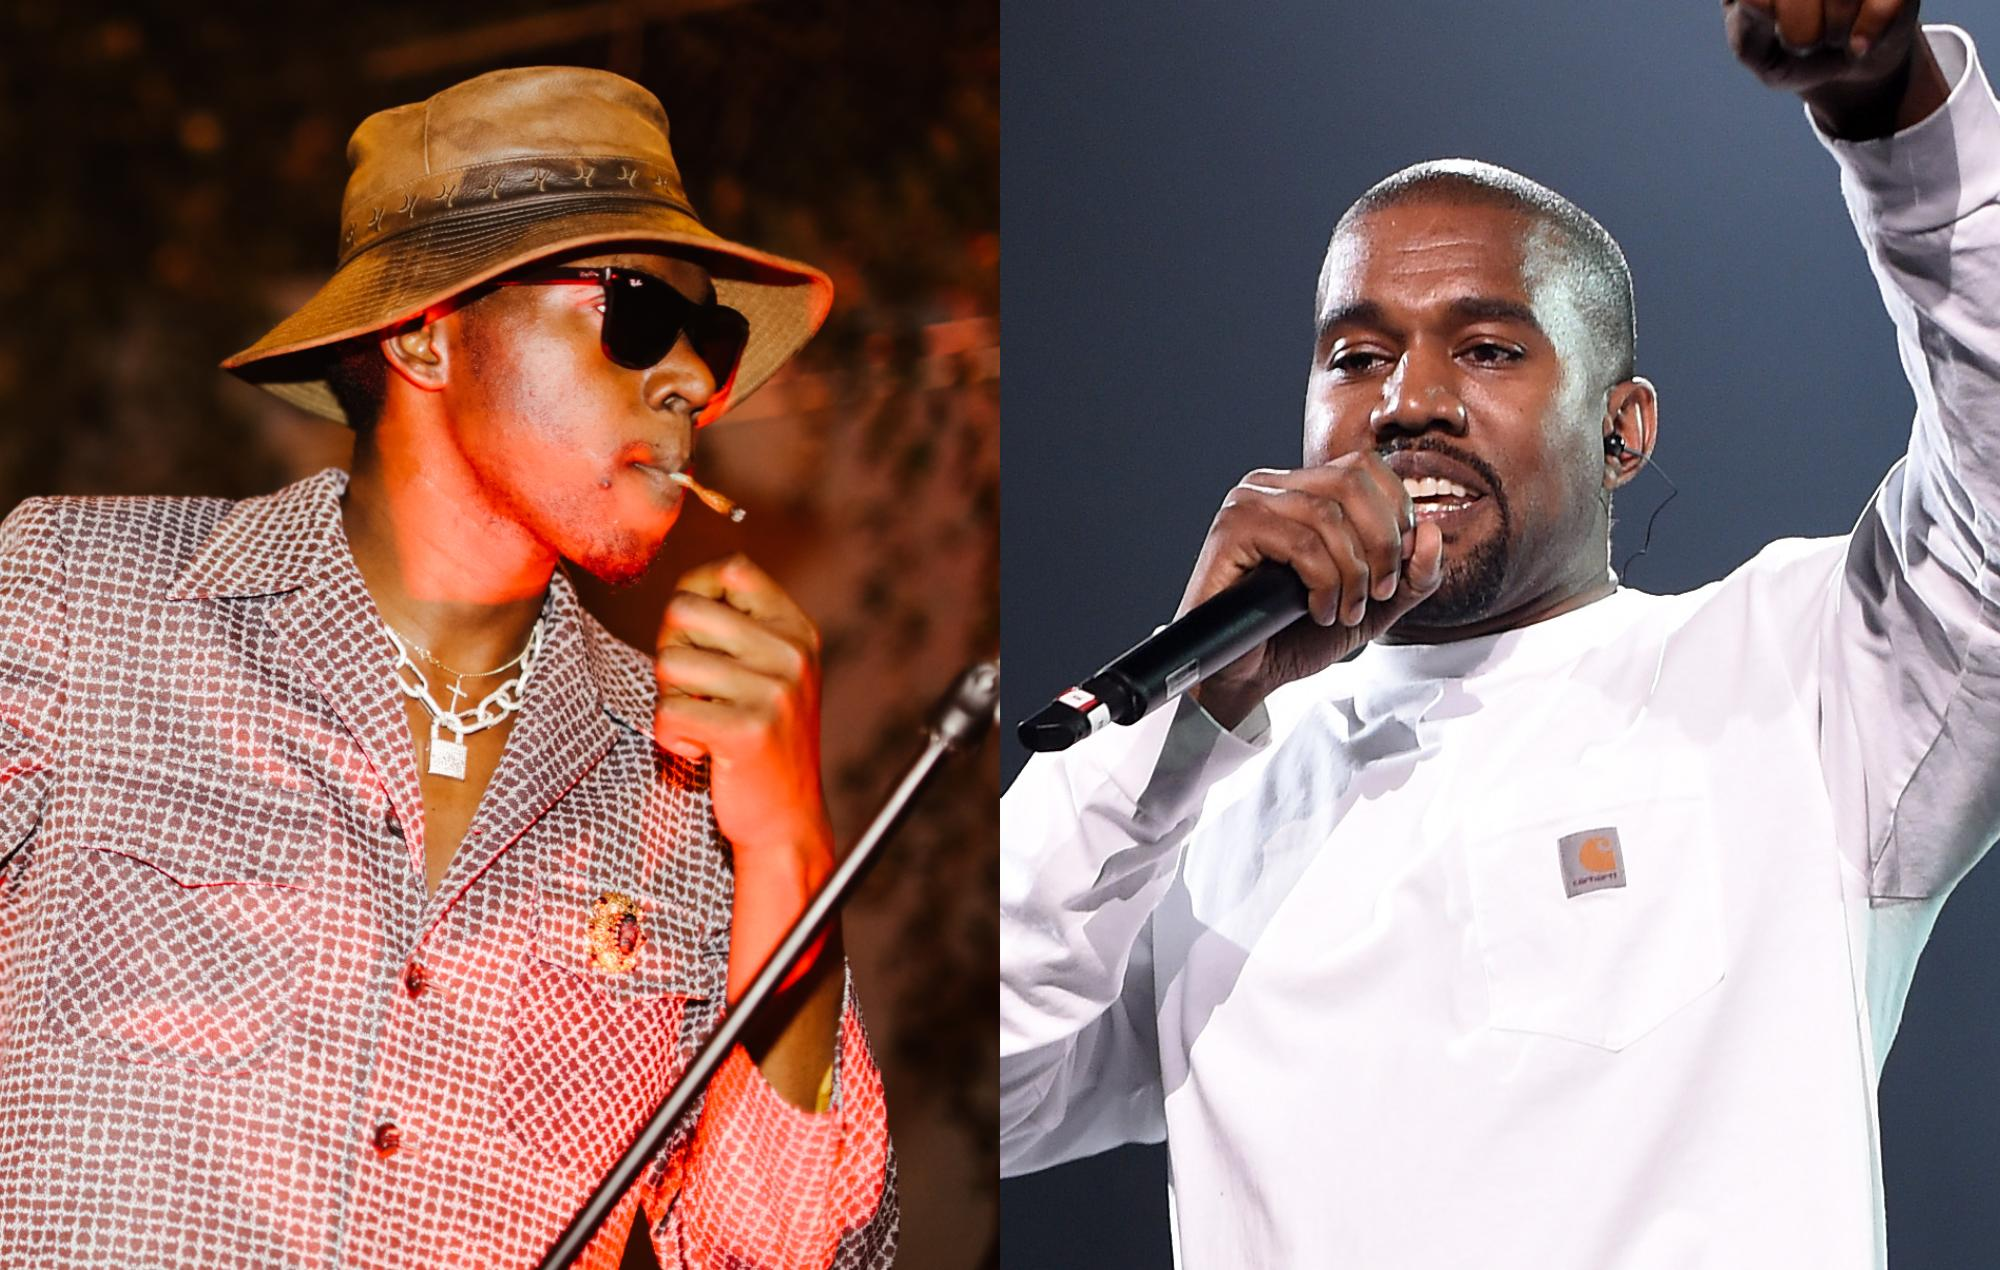 Theophilus London says Kanye West is adding last-minute guest features to 'DONDA' before its release